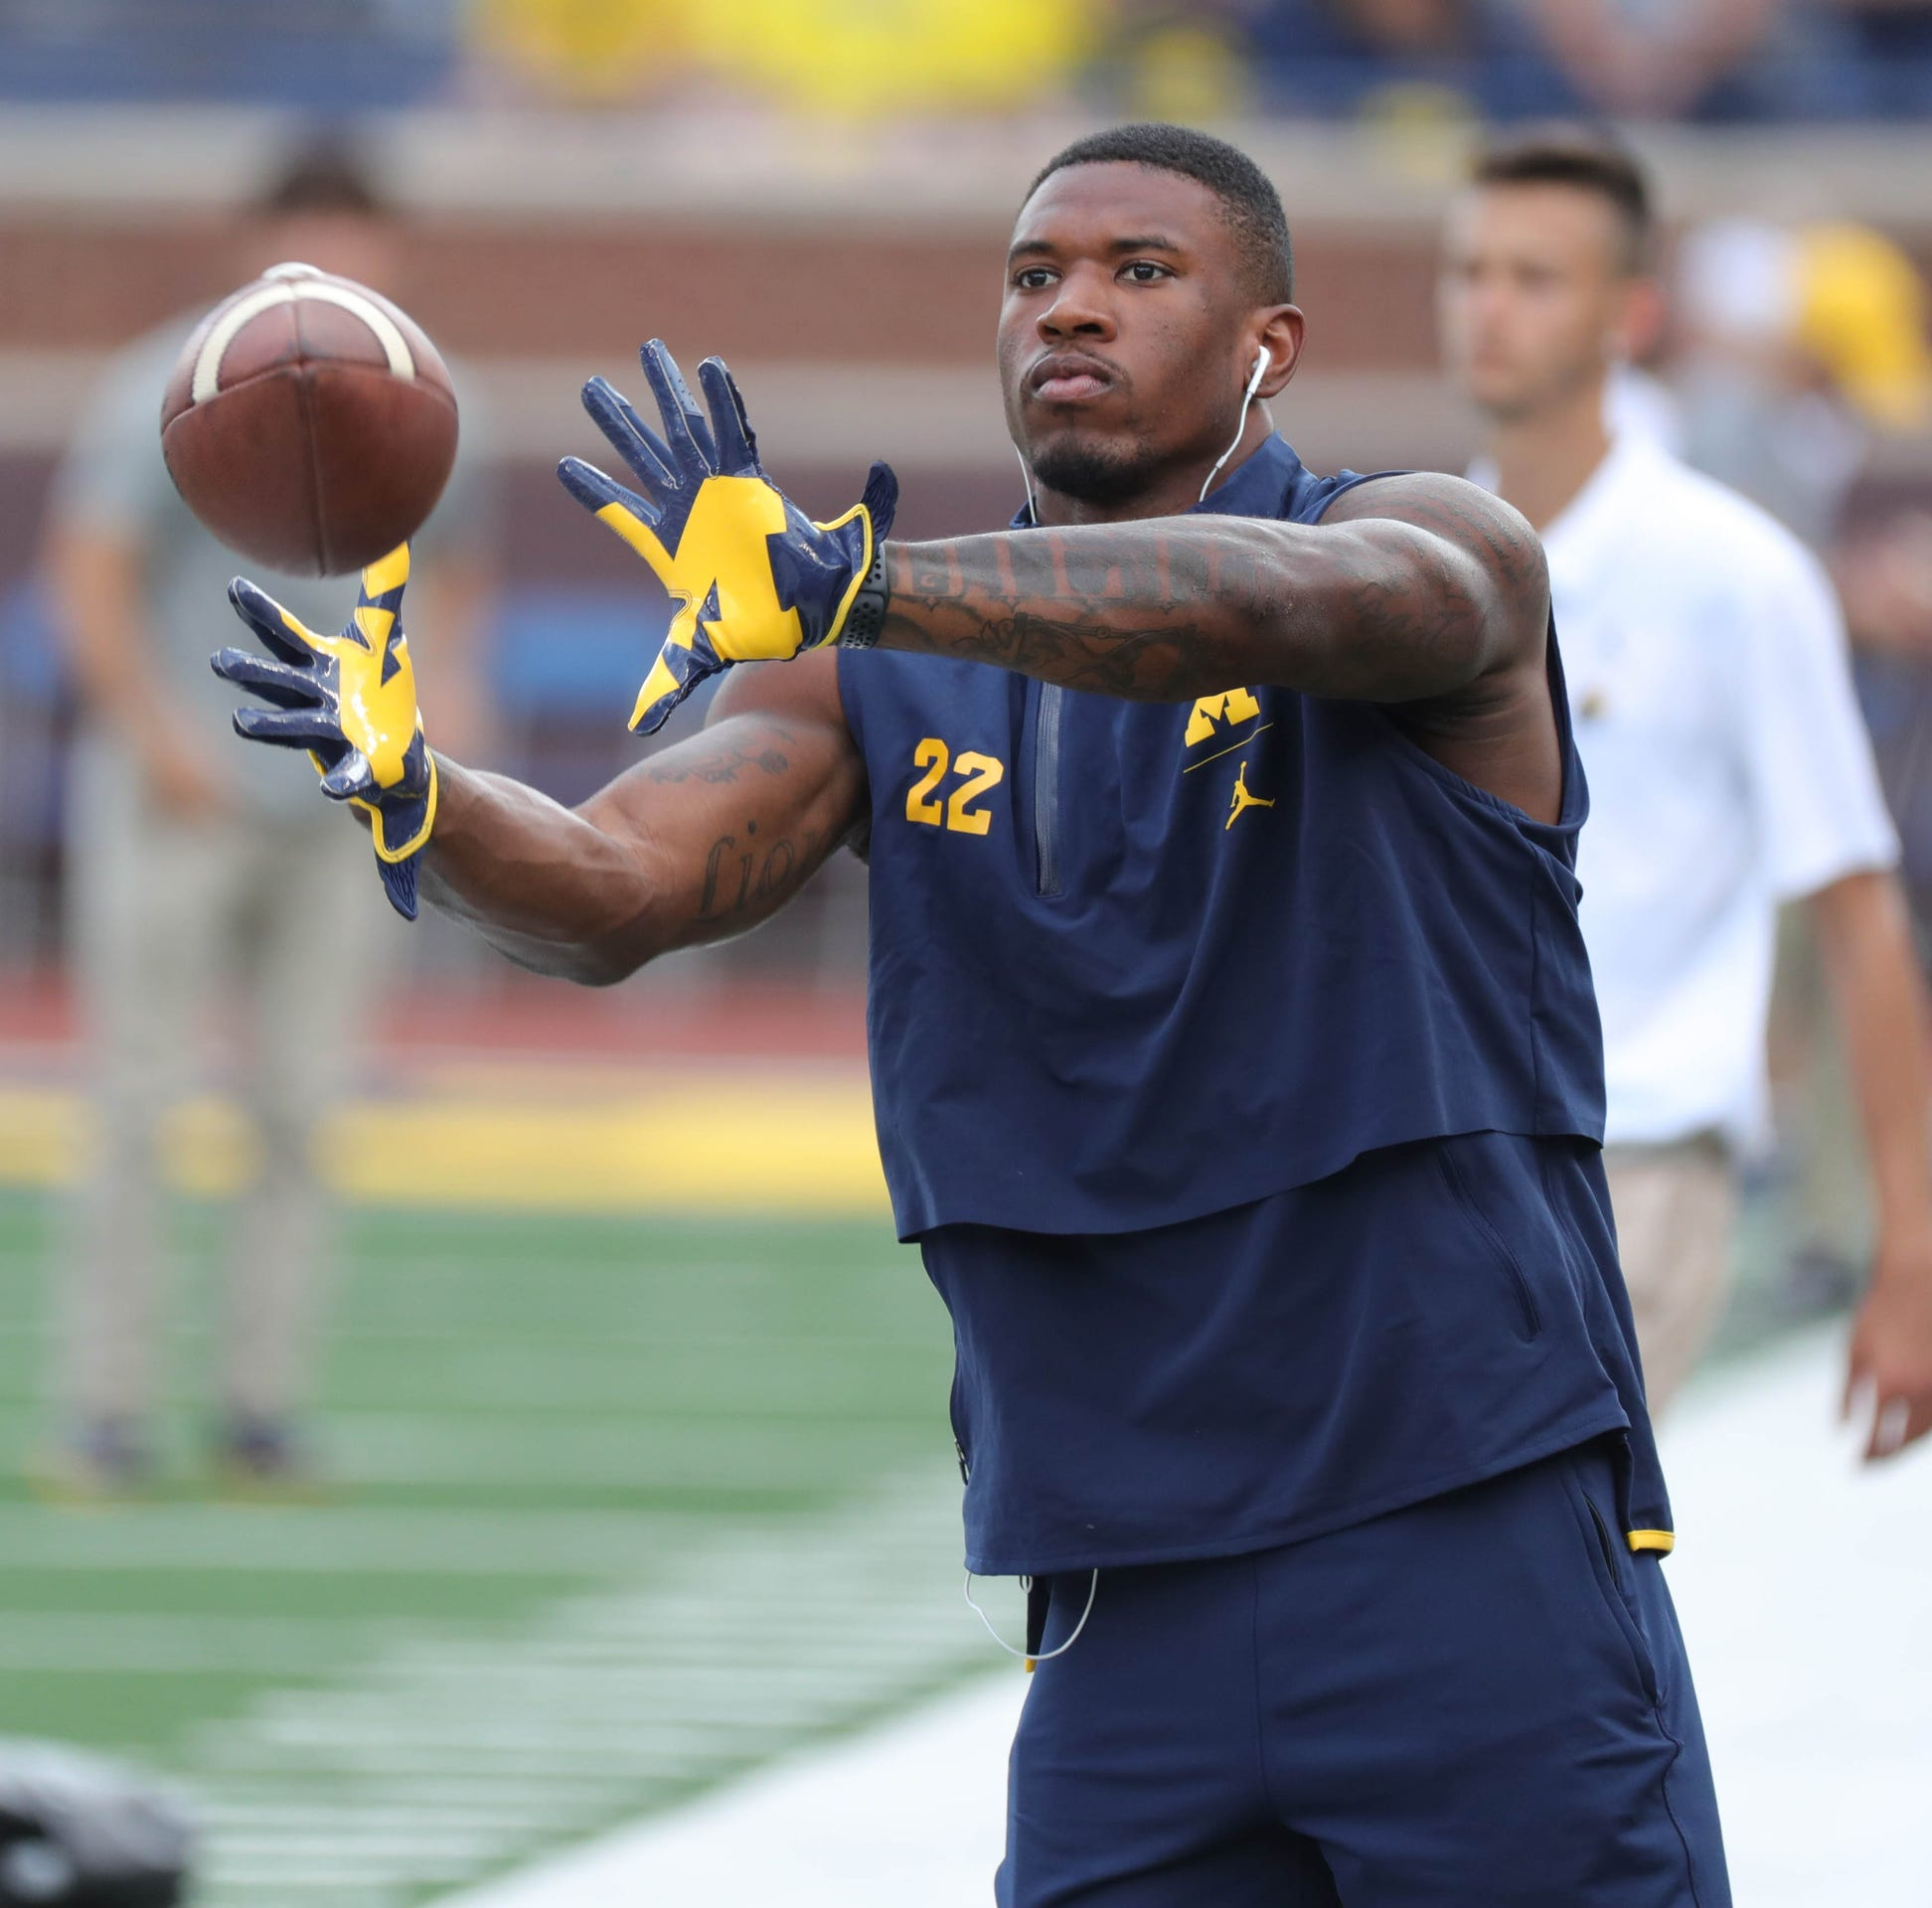 Michigan RBs Karan Higdon, Chris Evans both practice, per teammate